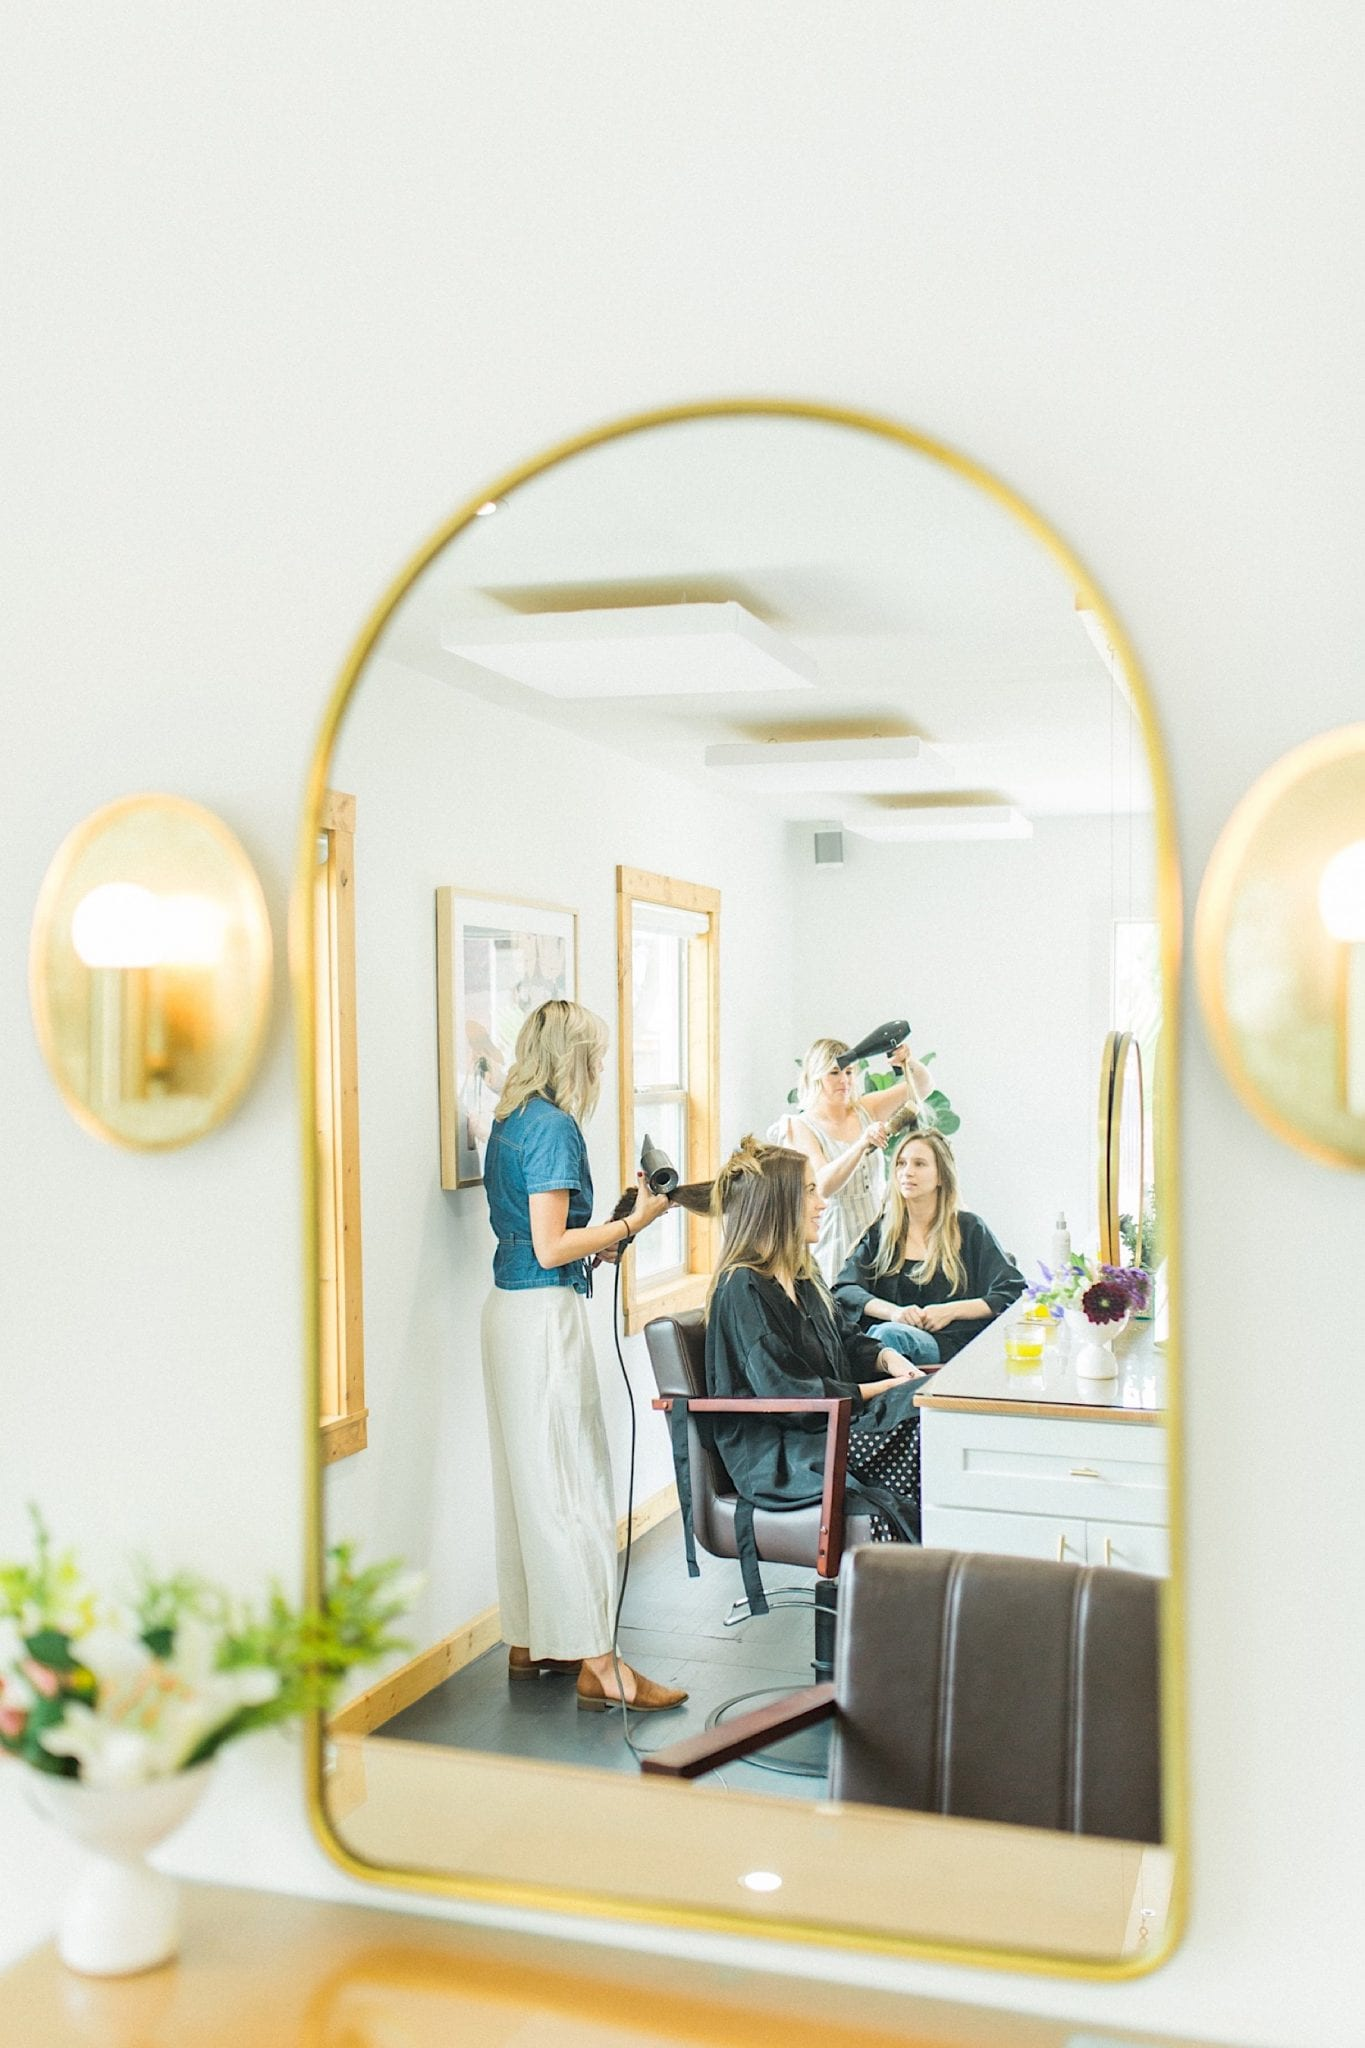 how to have healthy hair for your wedding, Wedding Hair Tips, Hair tips for your wedding, rise salon in ojai, ojai rise salon, sarah ellefson photography, ojai hair salon, hair salon in ojai, ojai wedding hair stylist, wedding stylist in ojai, ojai beauty bar, ojai hair stylist for wedding, ojai hair and makeup, hair and makeup in ojai, wedding photographer in ojai, ojai wedding photographer, ojai wedding photos, wedding photos in ojai, santa barbara wedding photographer,